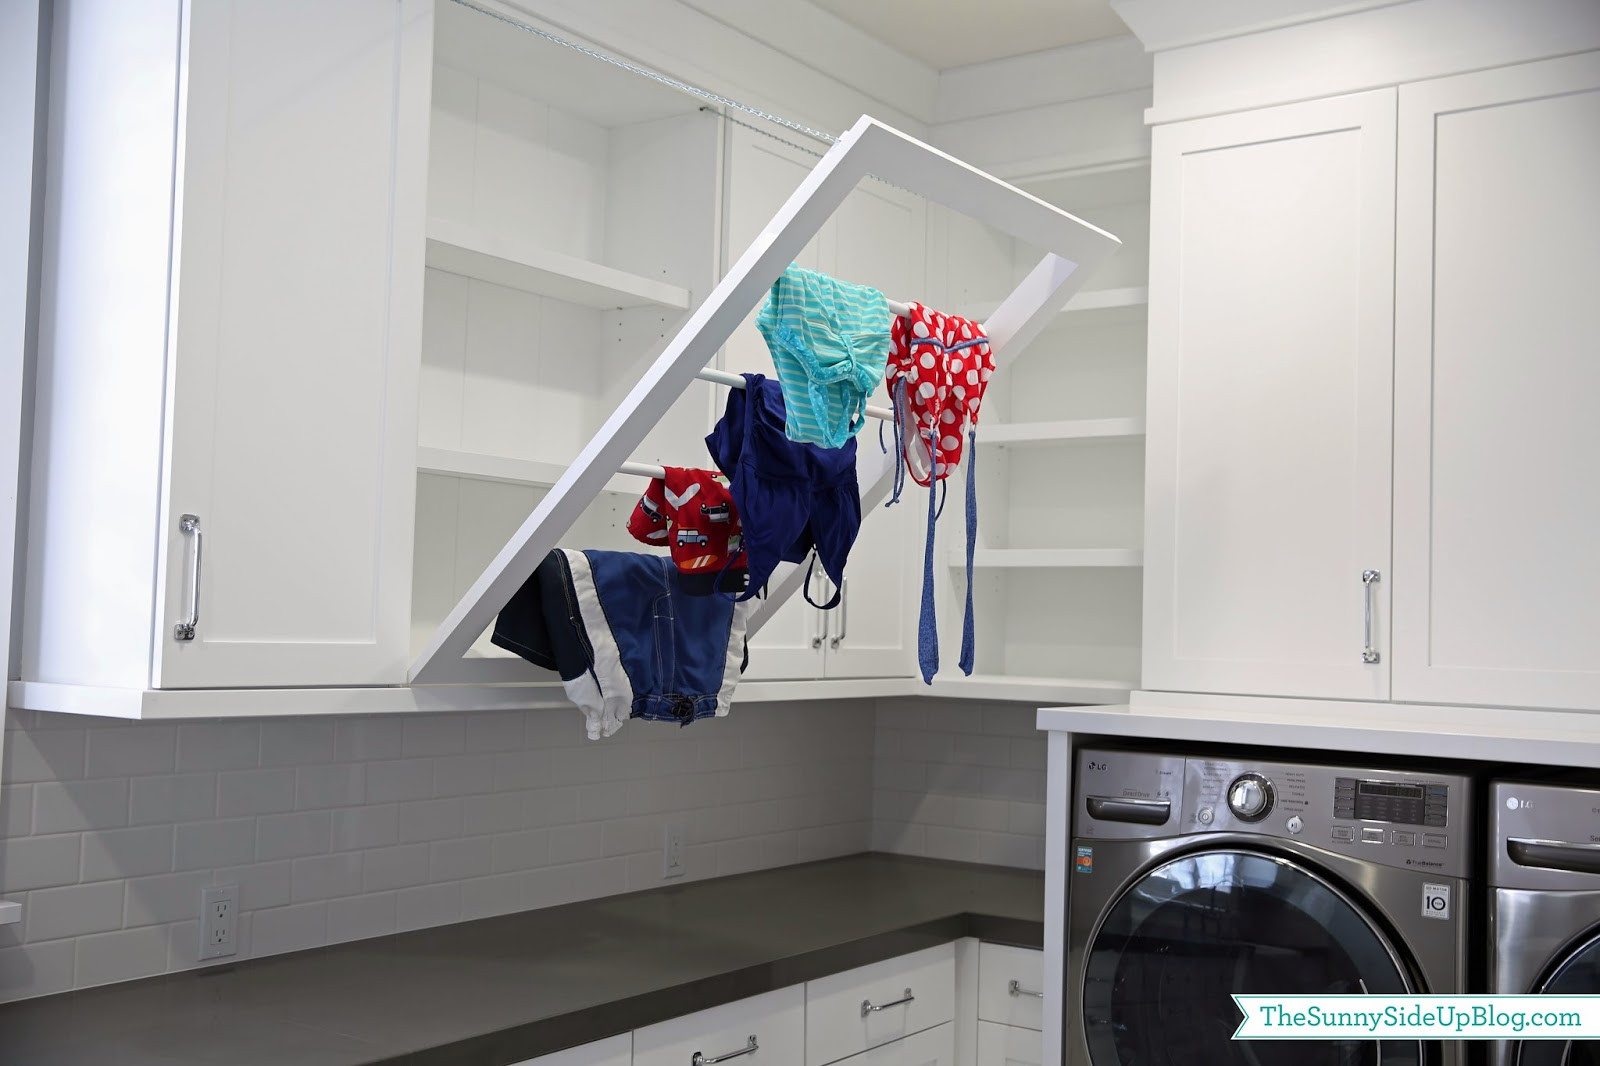 Best ideas about Laundry Room Drying Rack . Save or Pin Downstairs Laundry Room The Sunny Side Up Blog Now.